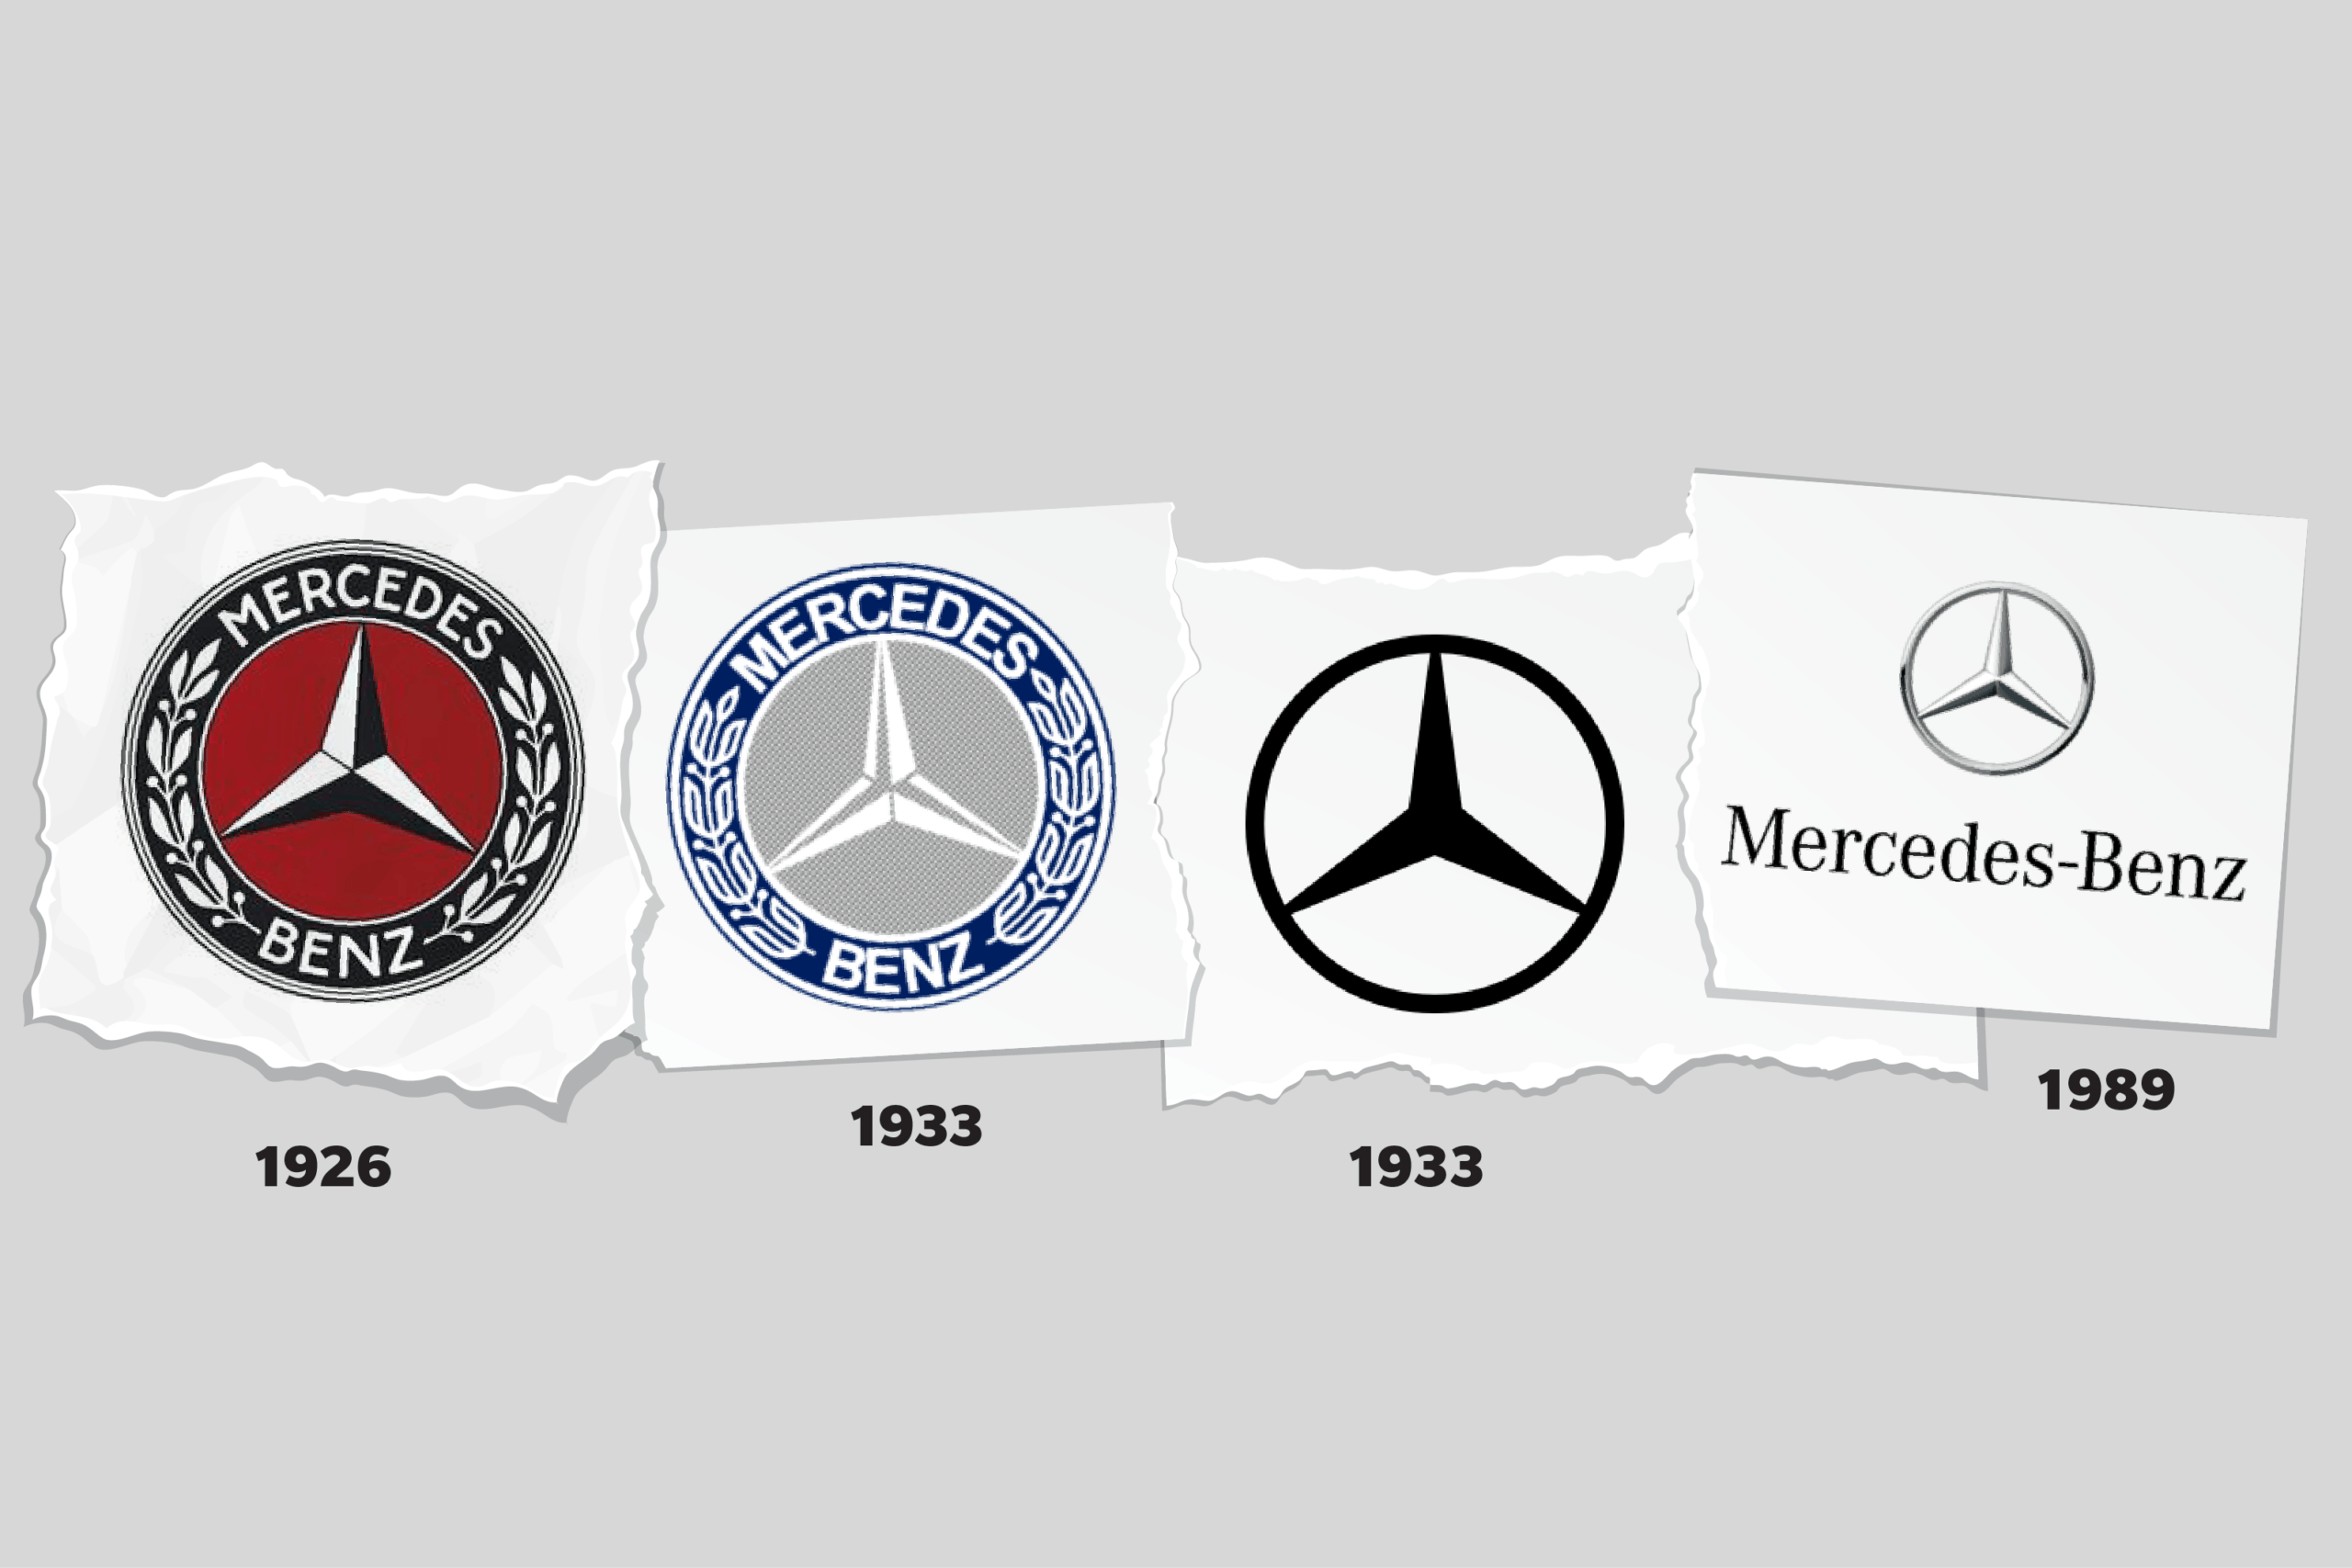 Images of Mercedes-Benz logos through time